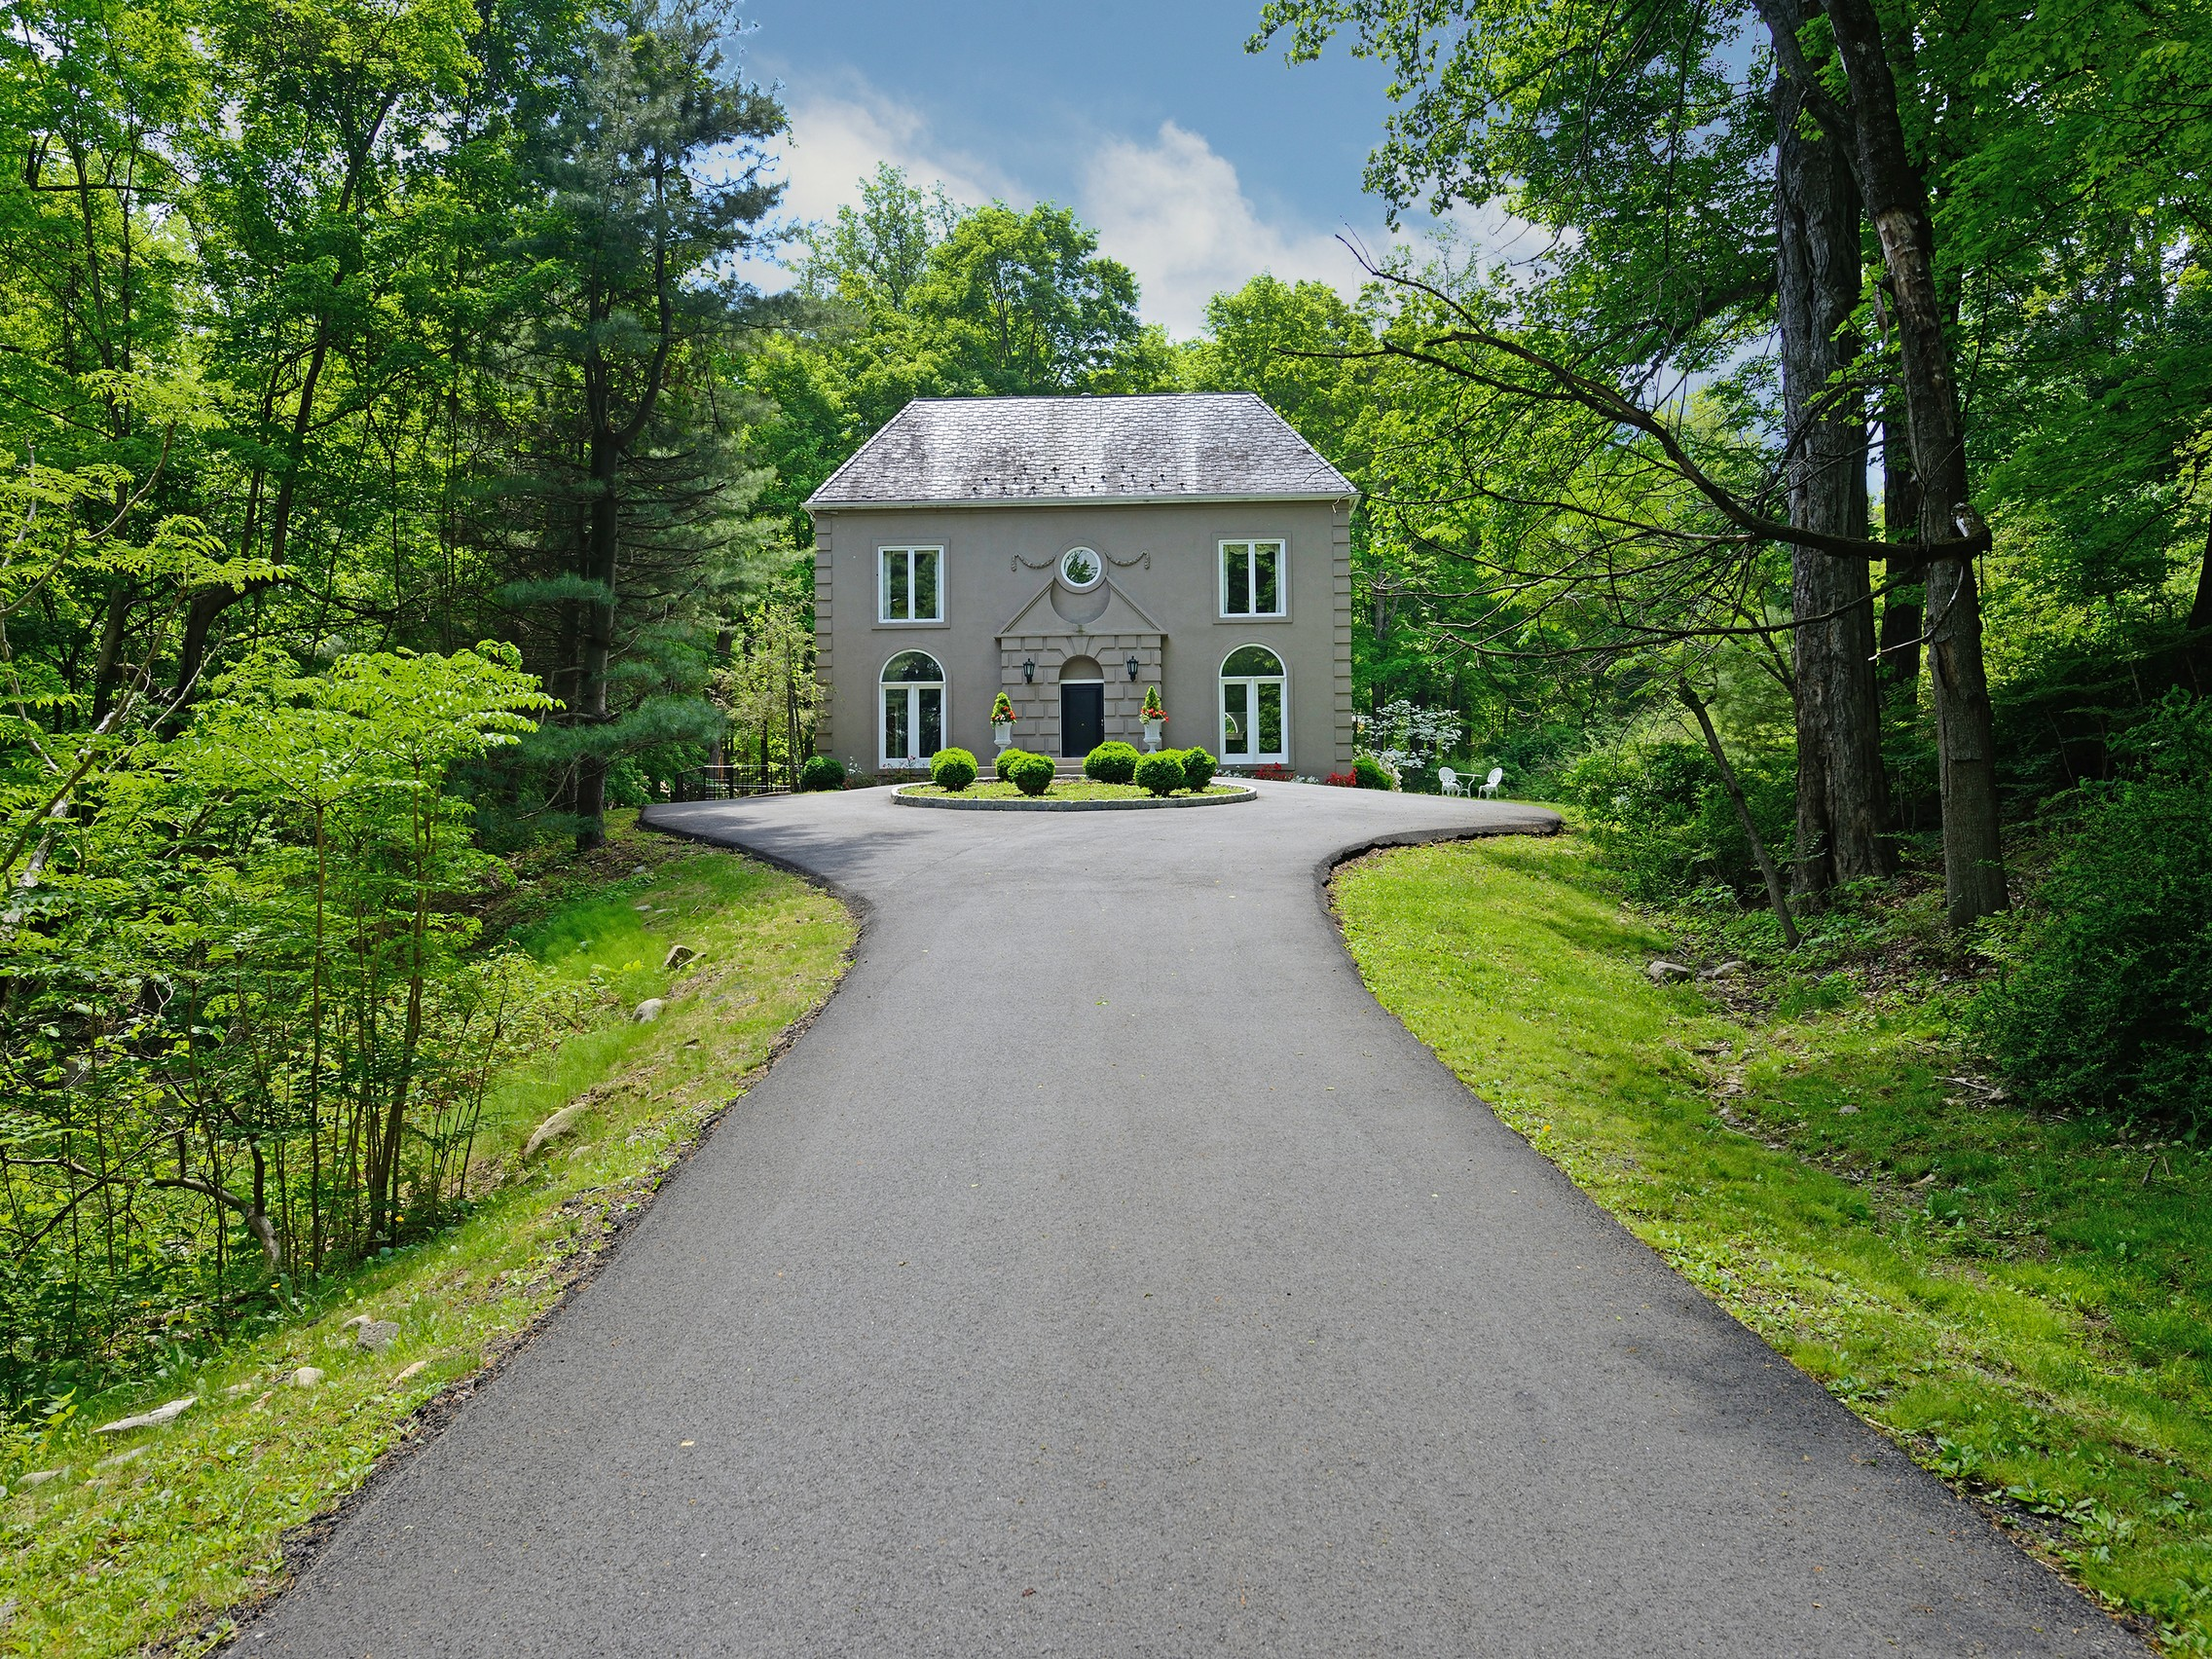 Casa Unifamiliar por un Venta en Into the Woods 27 Pepperidge Road Tuxedo Park, Nueva York, 10987 Estados Unidos